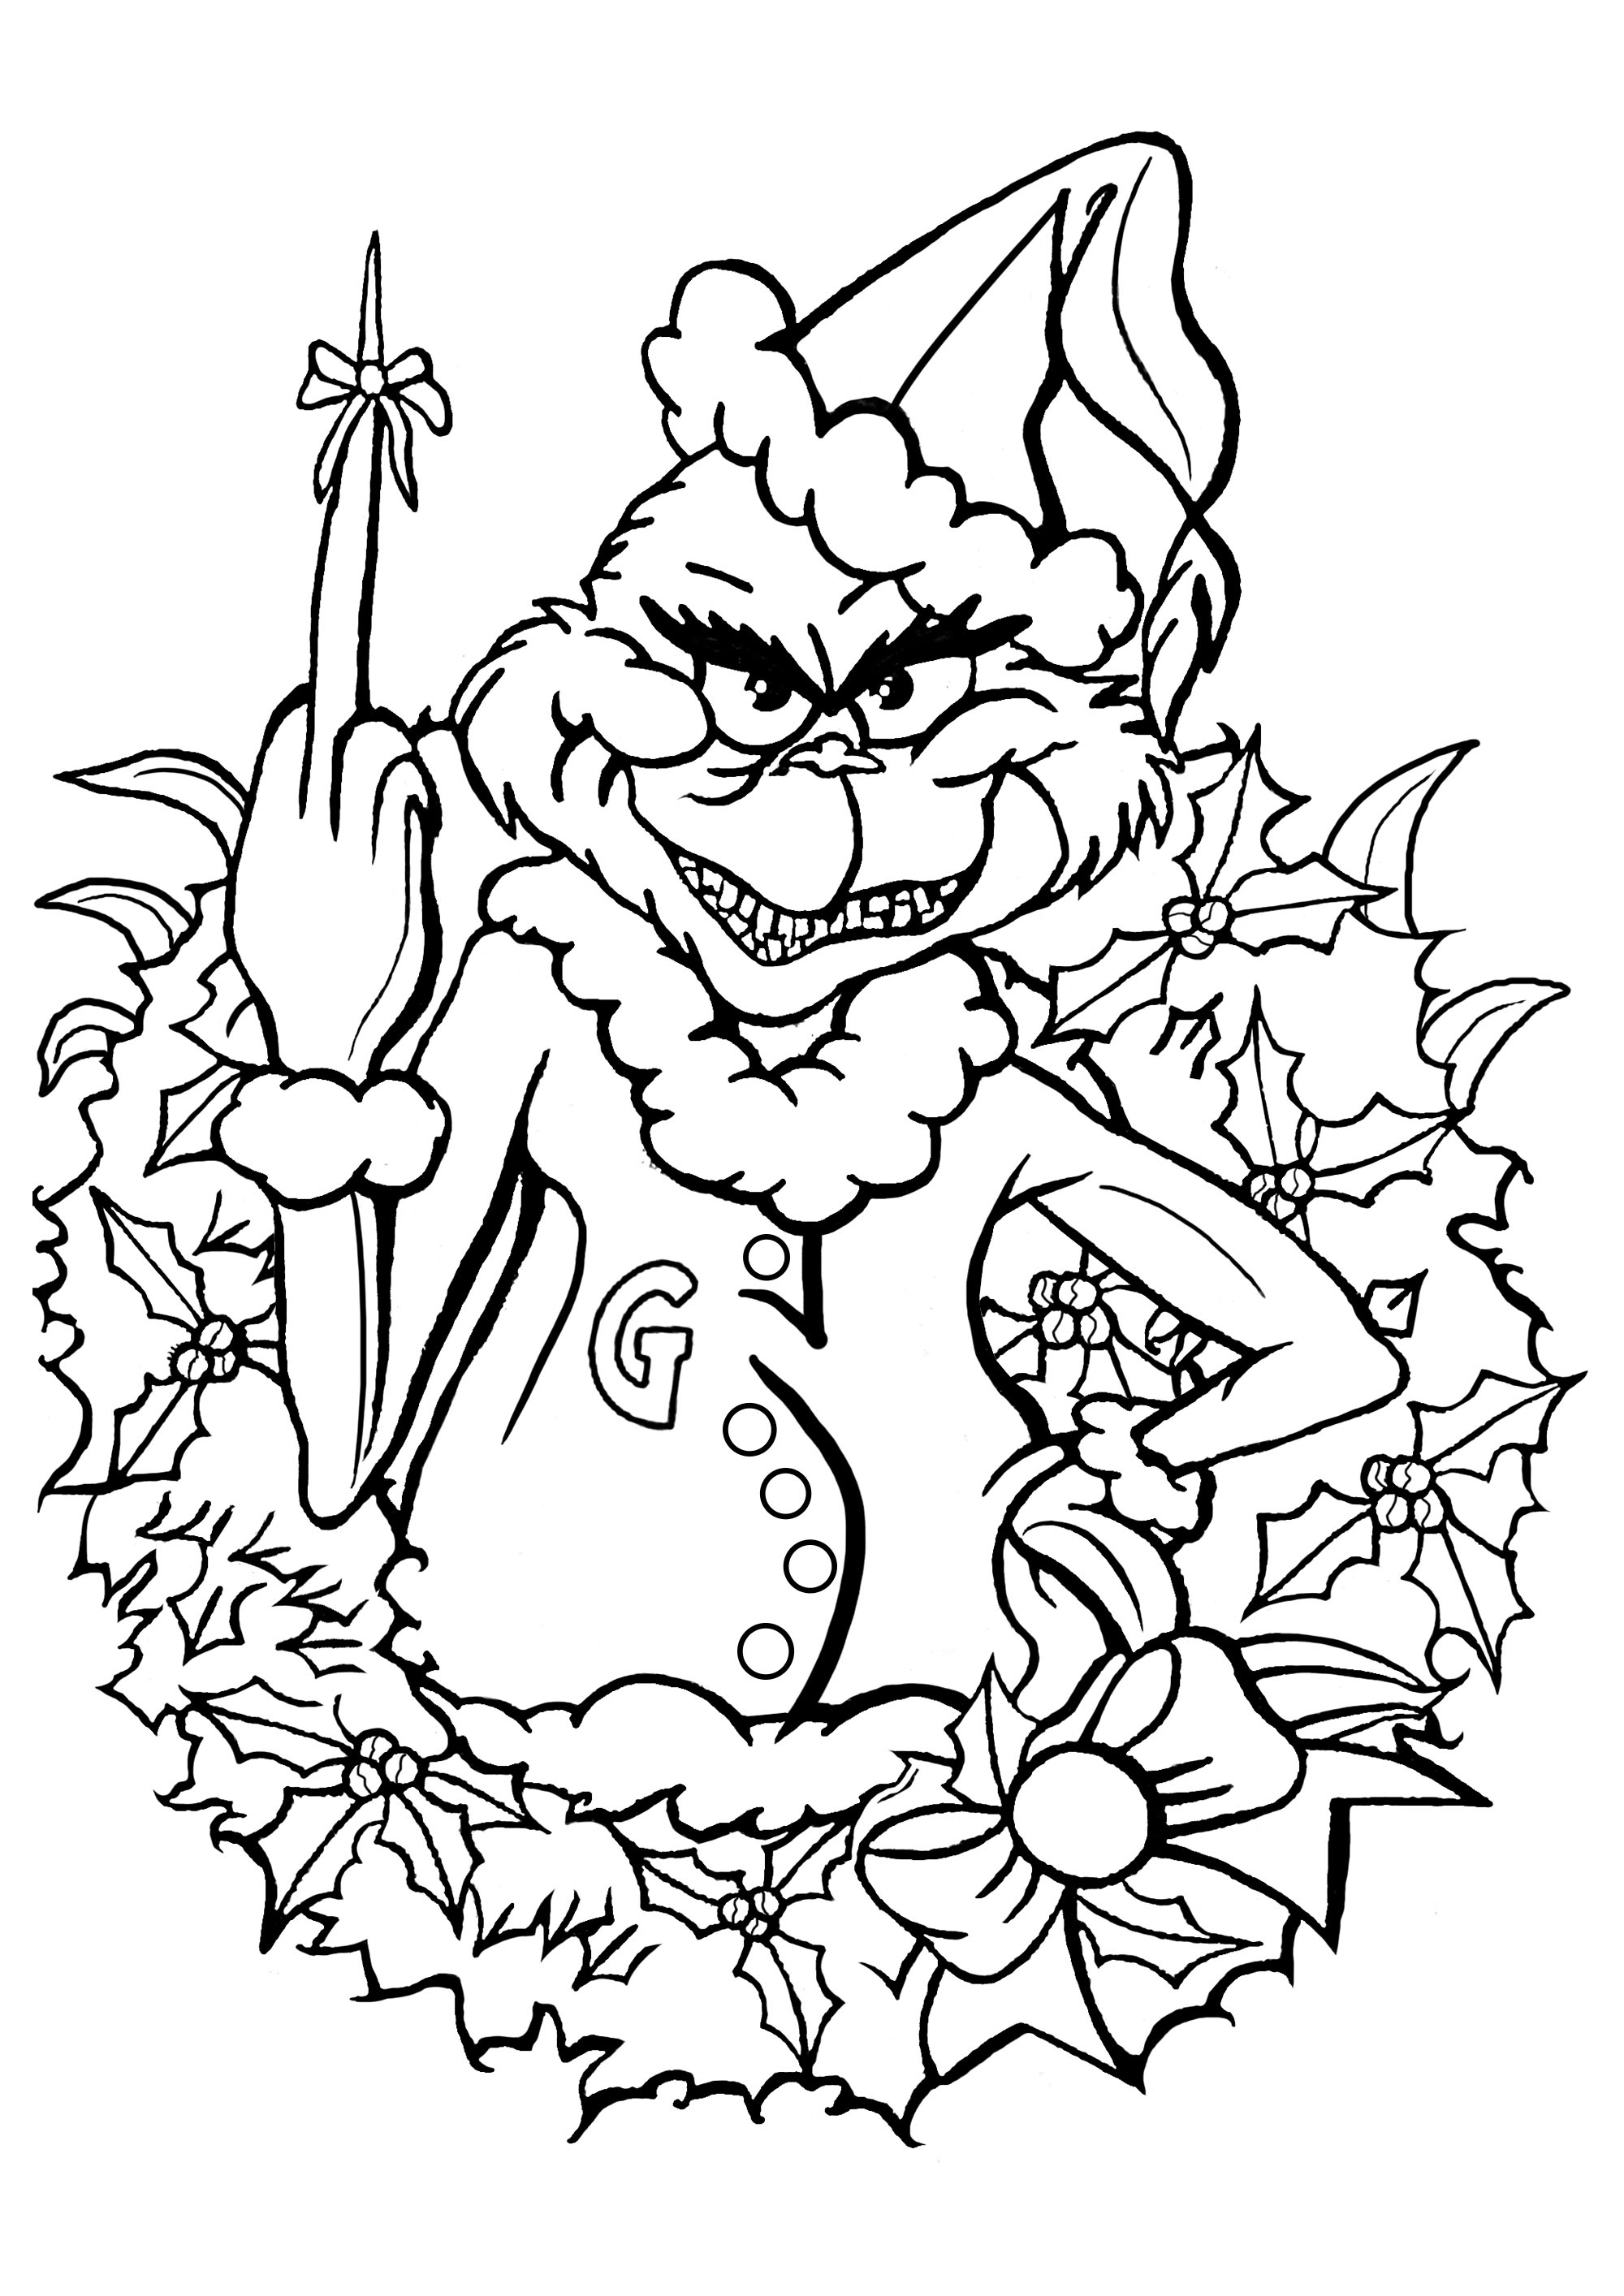 The Grinch Christmas Adult Coloring